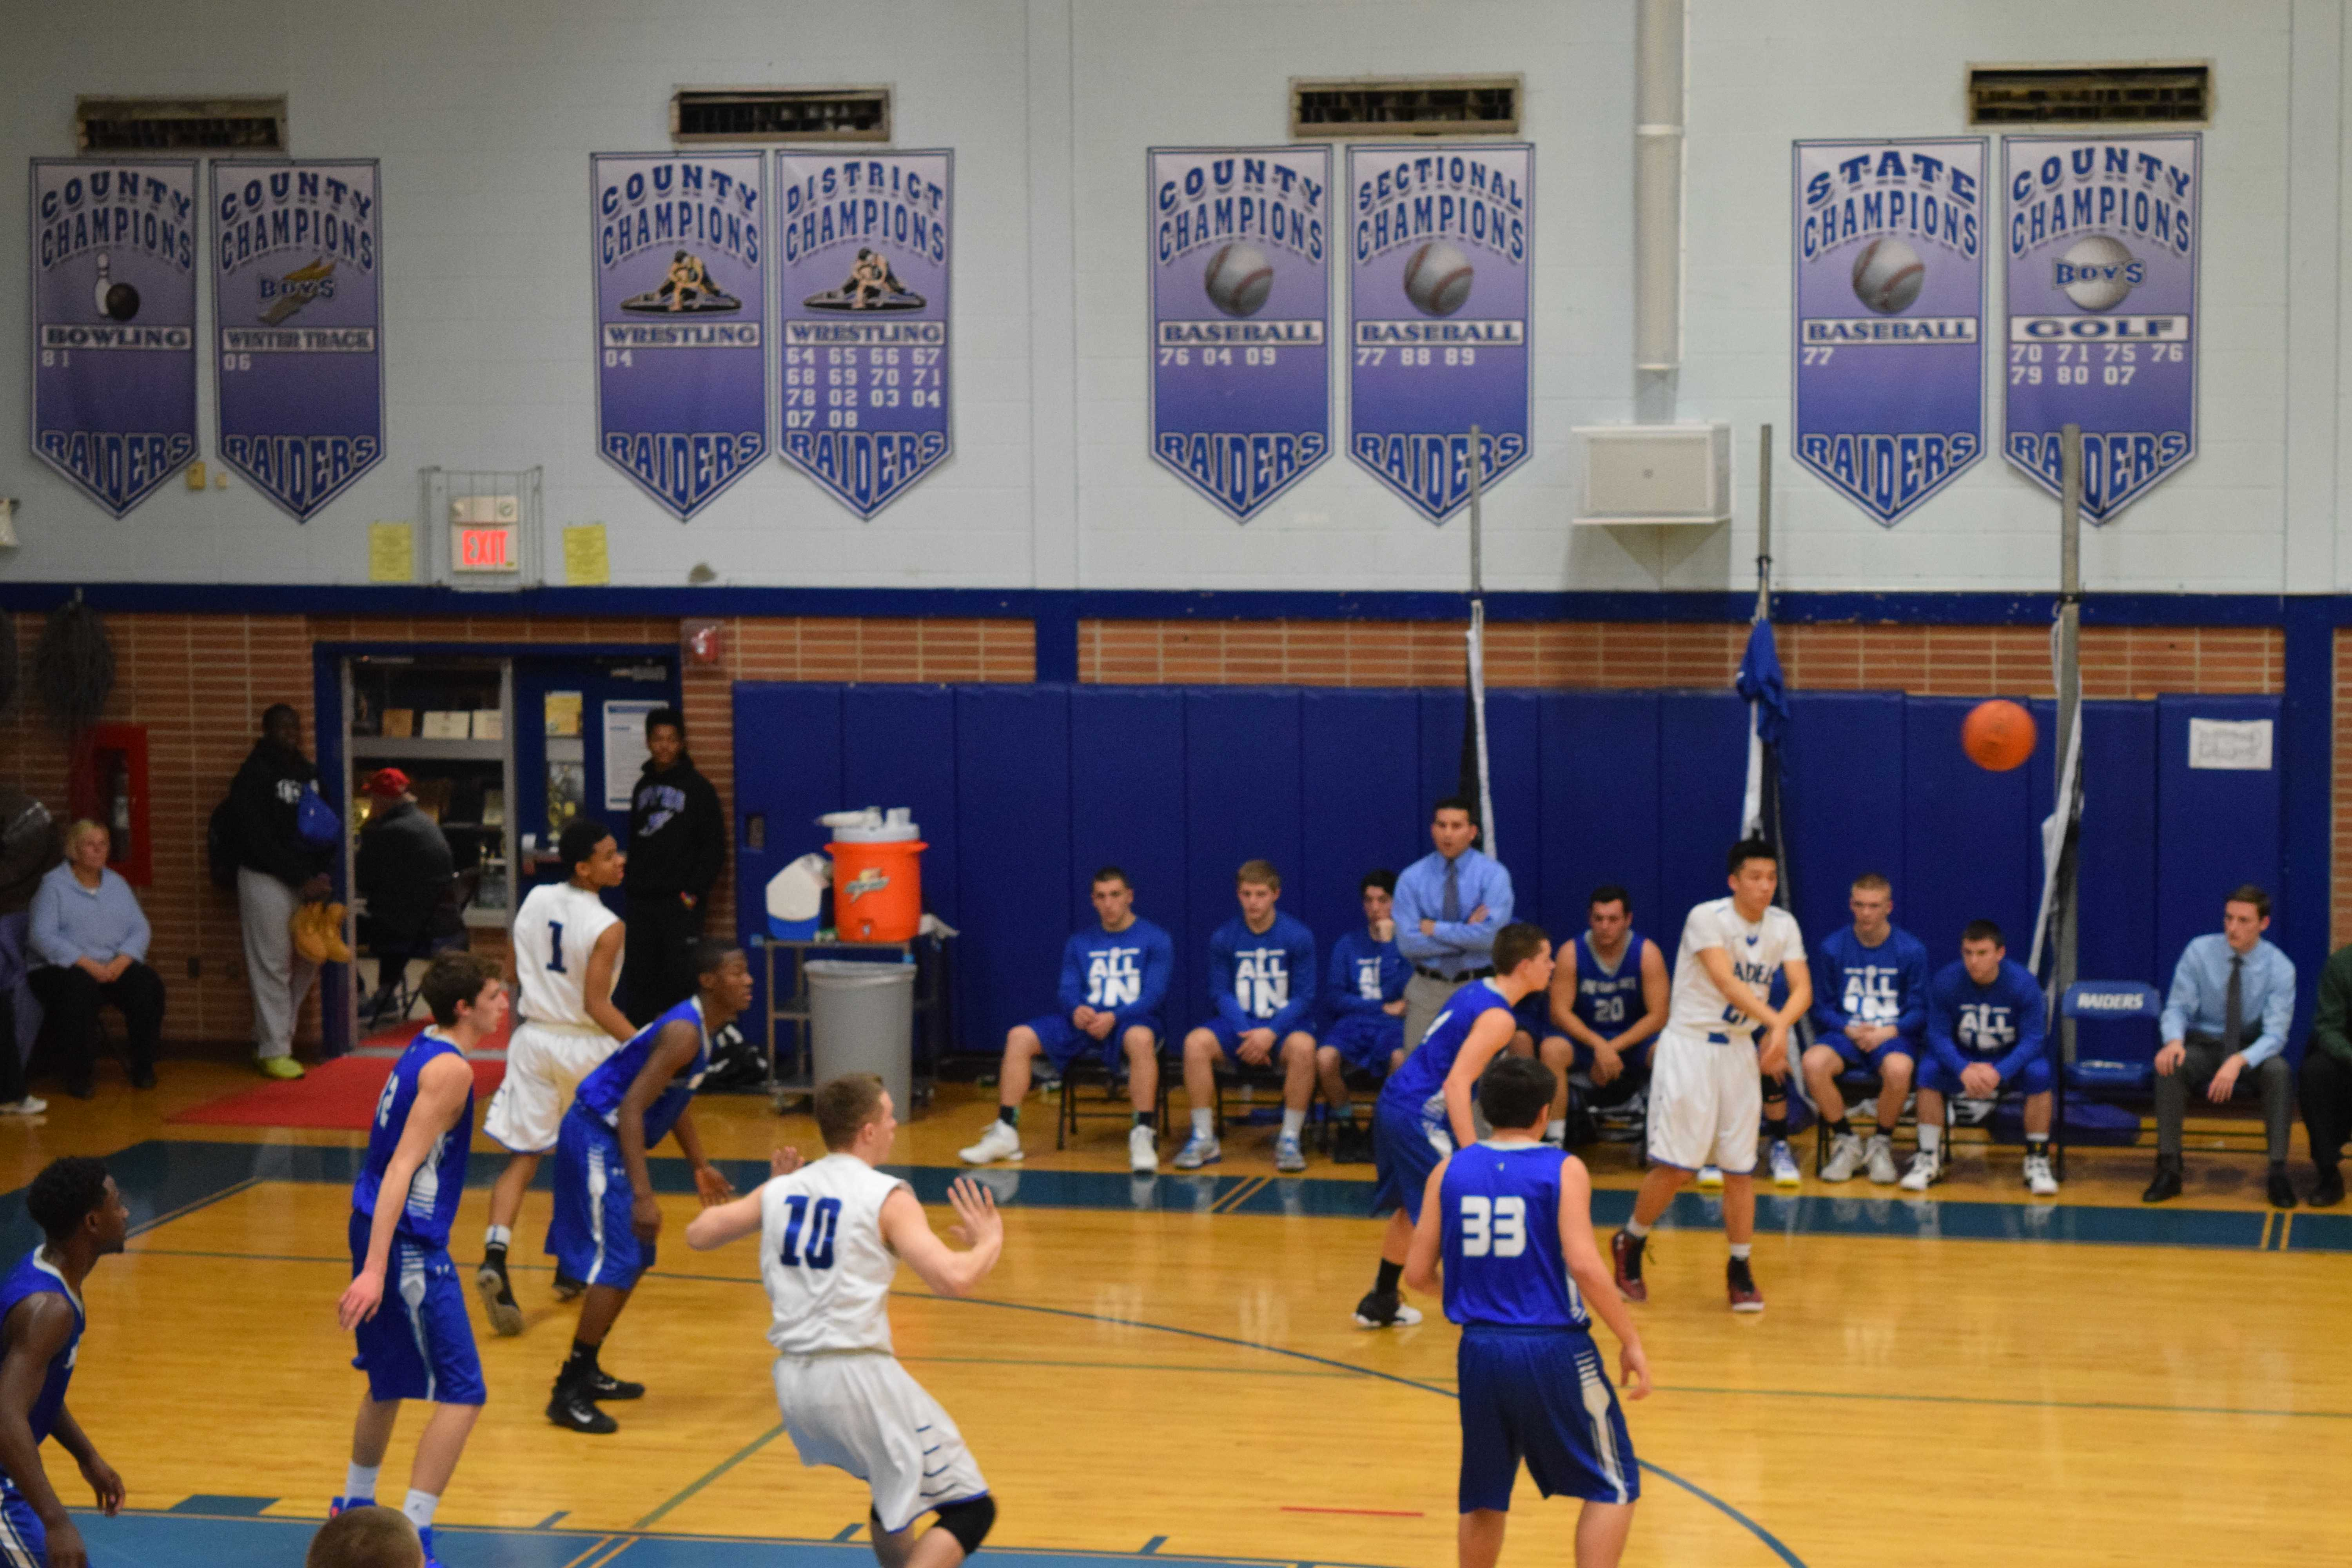 Senior Aaron Lee makes a pass. As point guard, Lee was a clear leader on the court.